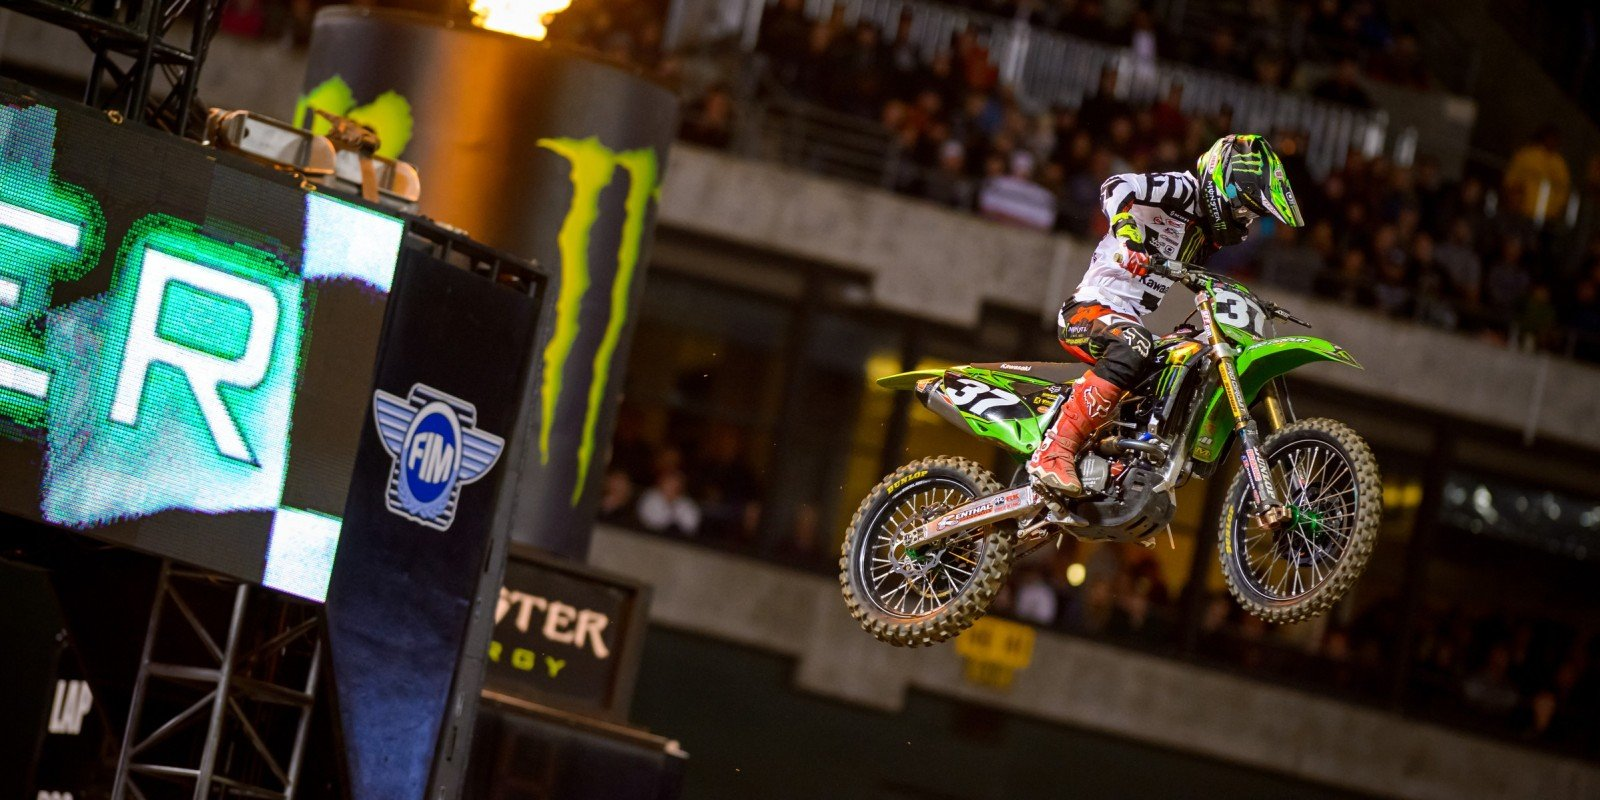 Joey Savatgy competes in the 2016 Supercross season in Oakland